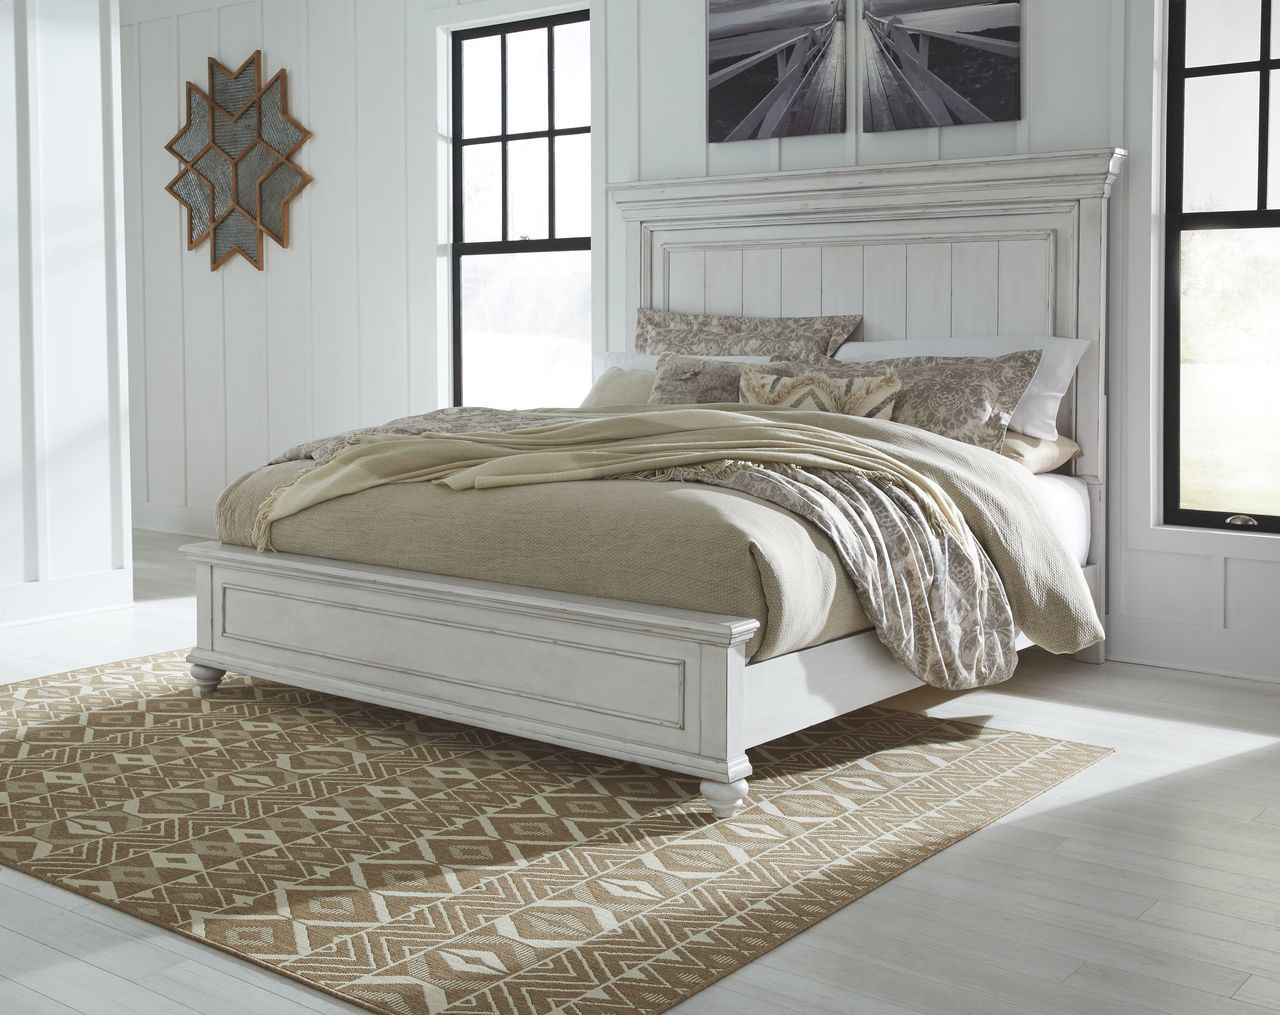 Picture of: The Kanwyn Whitewash Queen Panel Bed Available At Ritz Furniture Planet Serving Mississauga On